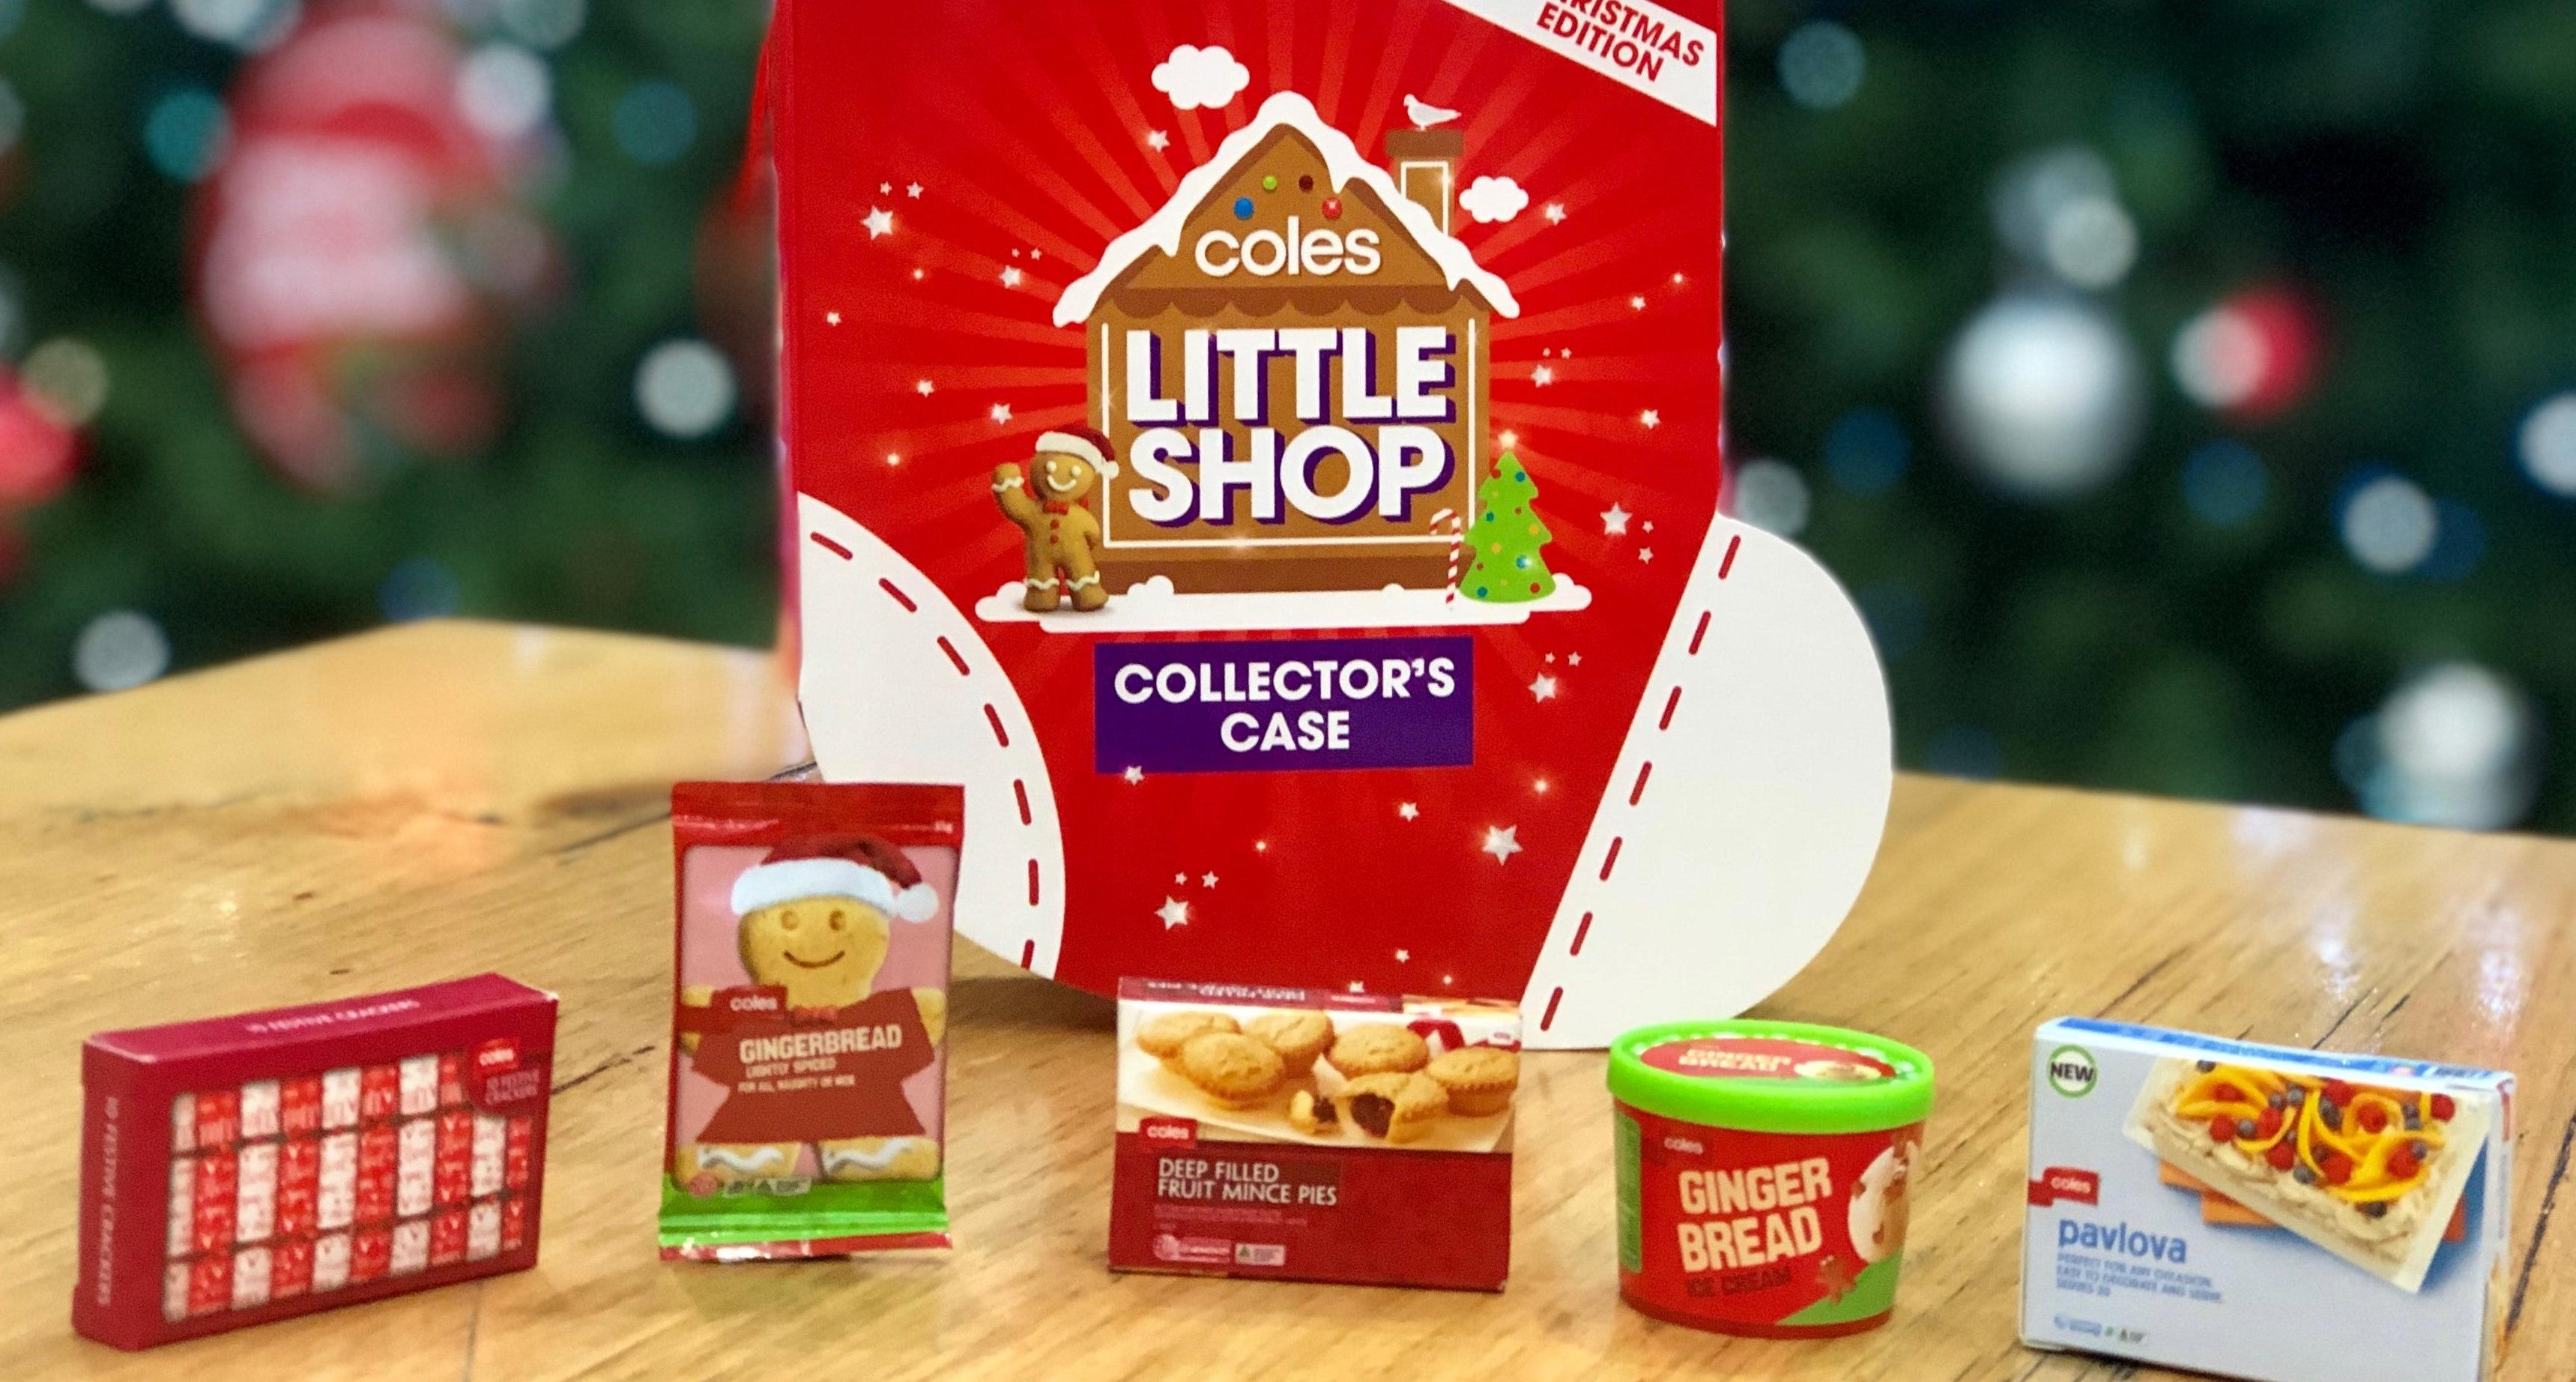 Coles Little Shop Back In Business With Christmas Collectables